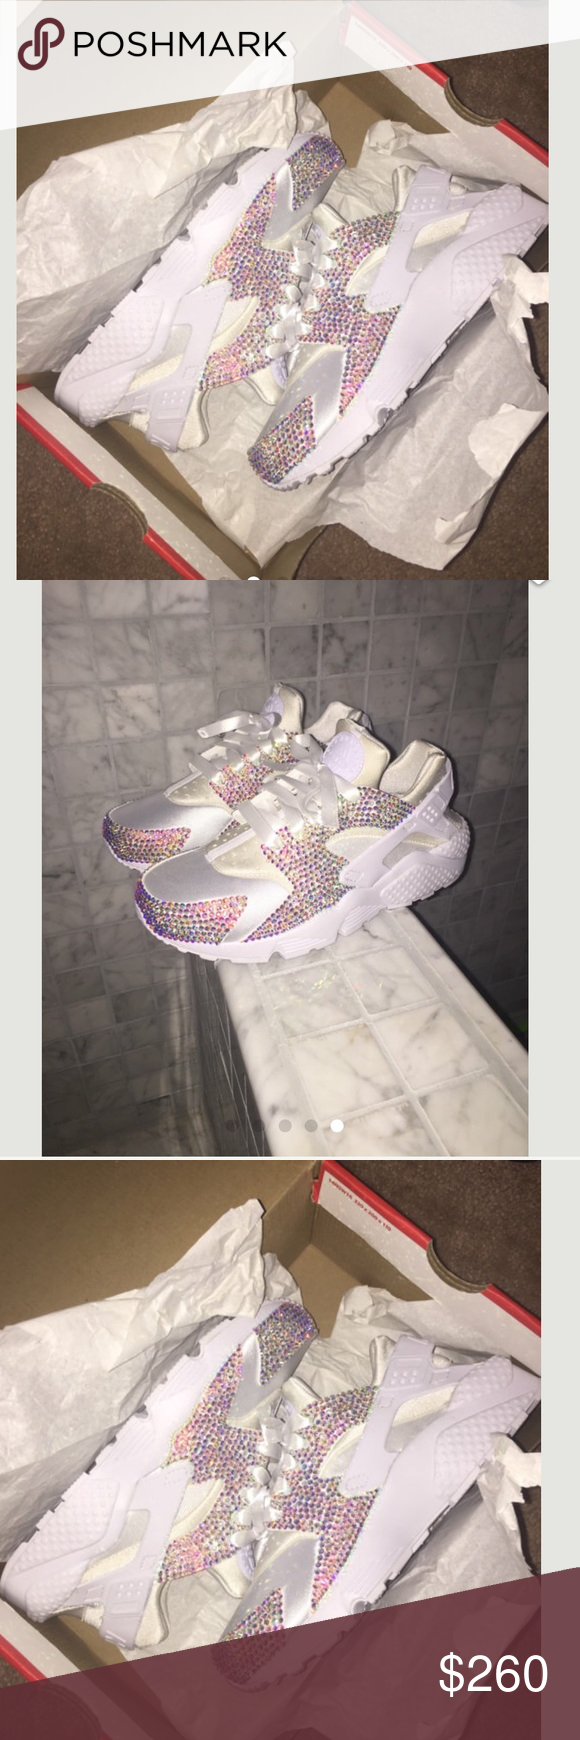 CUSTOM BLING NIKE HUARACHES CAN BE MADE IN ANY SIZE OR COLOR JUST COMMENT  BEFORE YOU